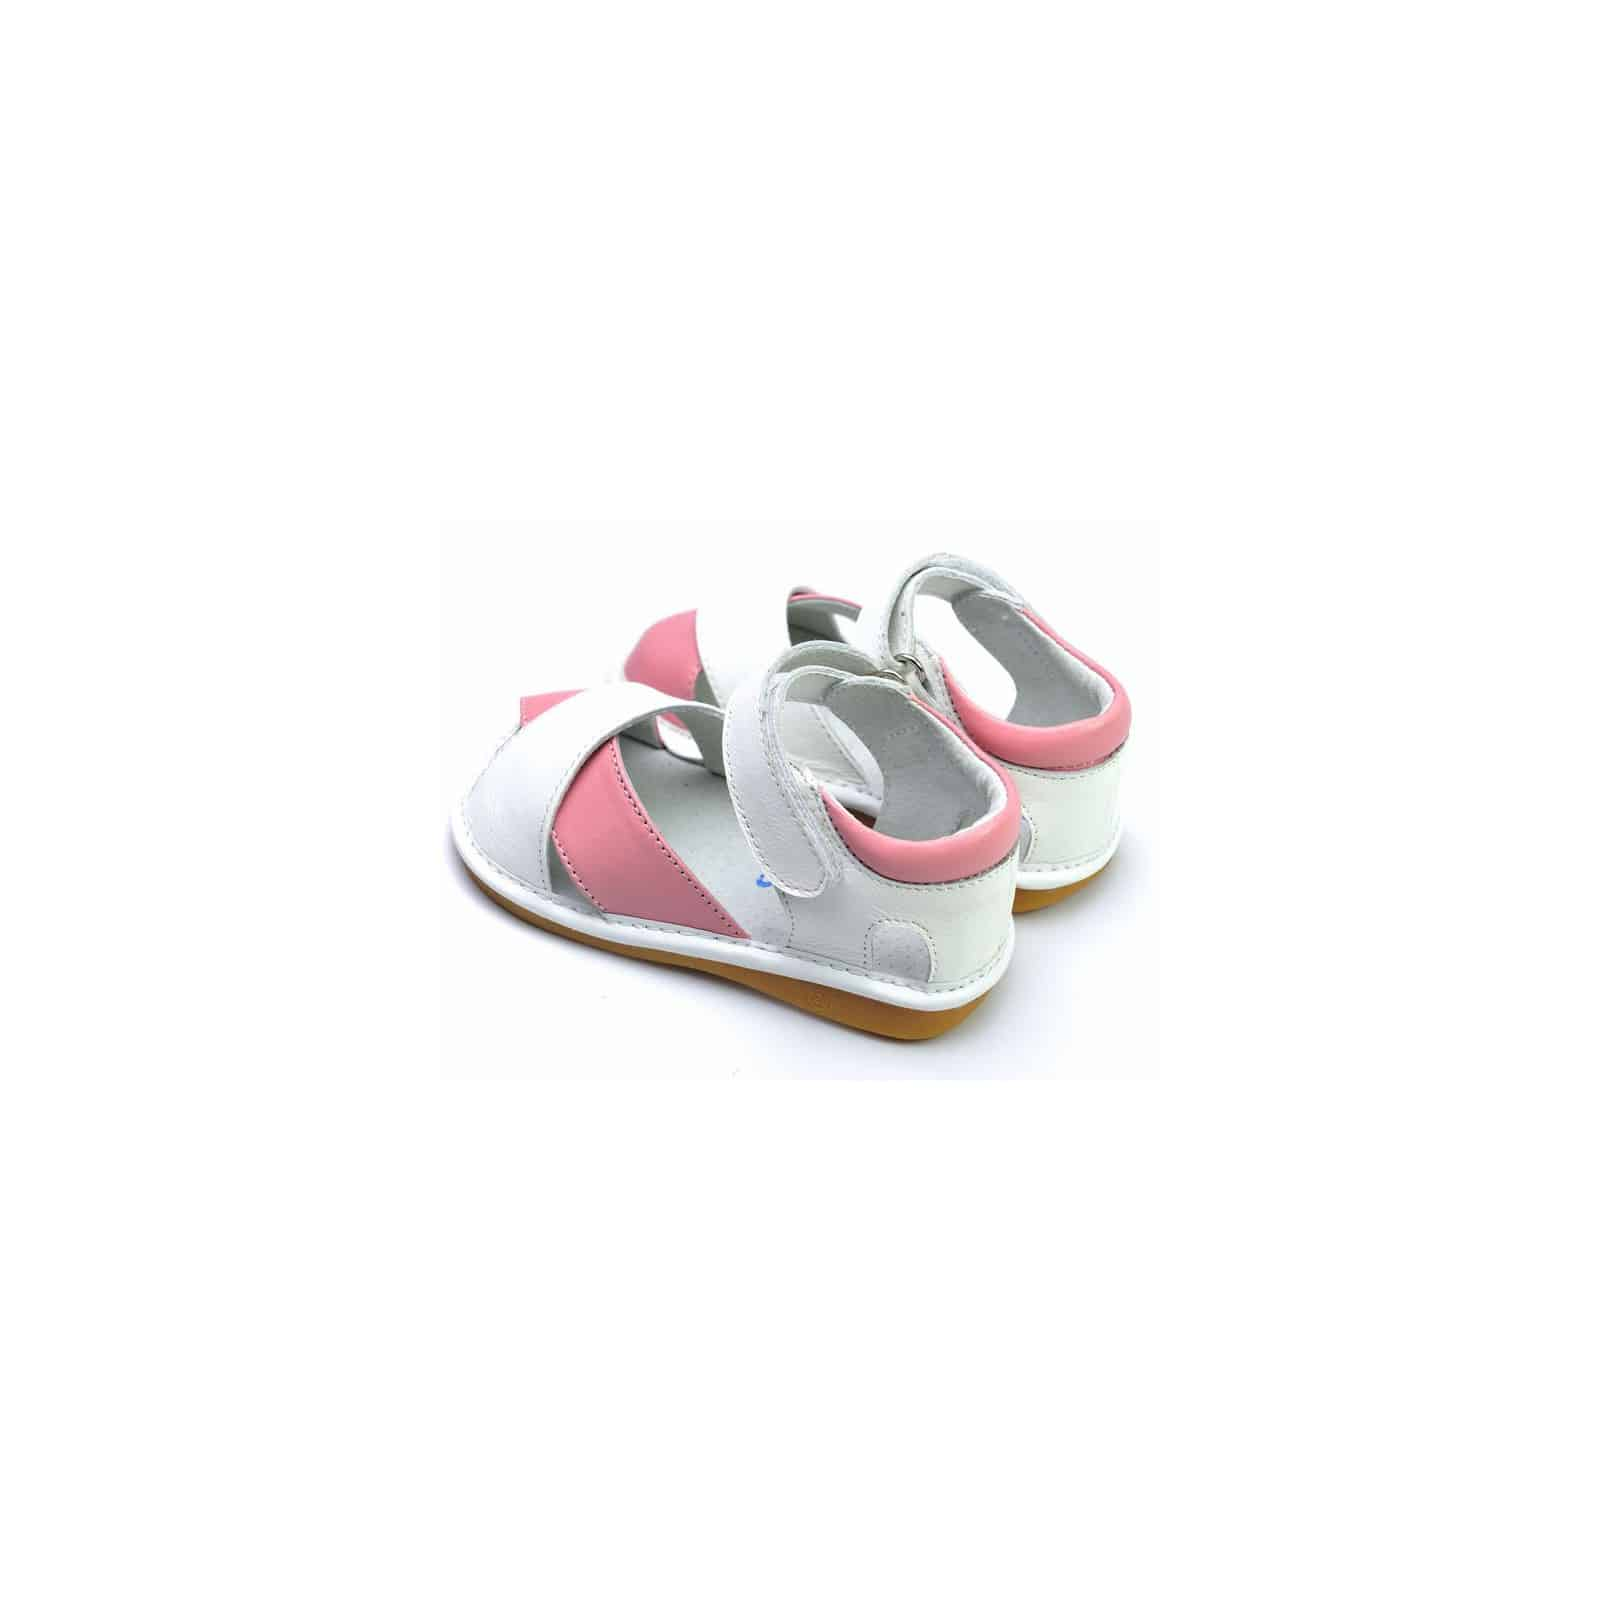 Shoes gt girls squeaky shoes gt freycoo squeaky leather toddler